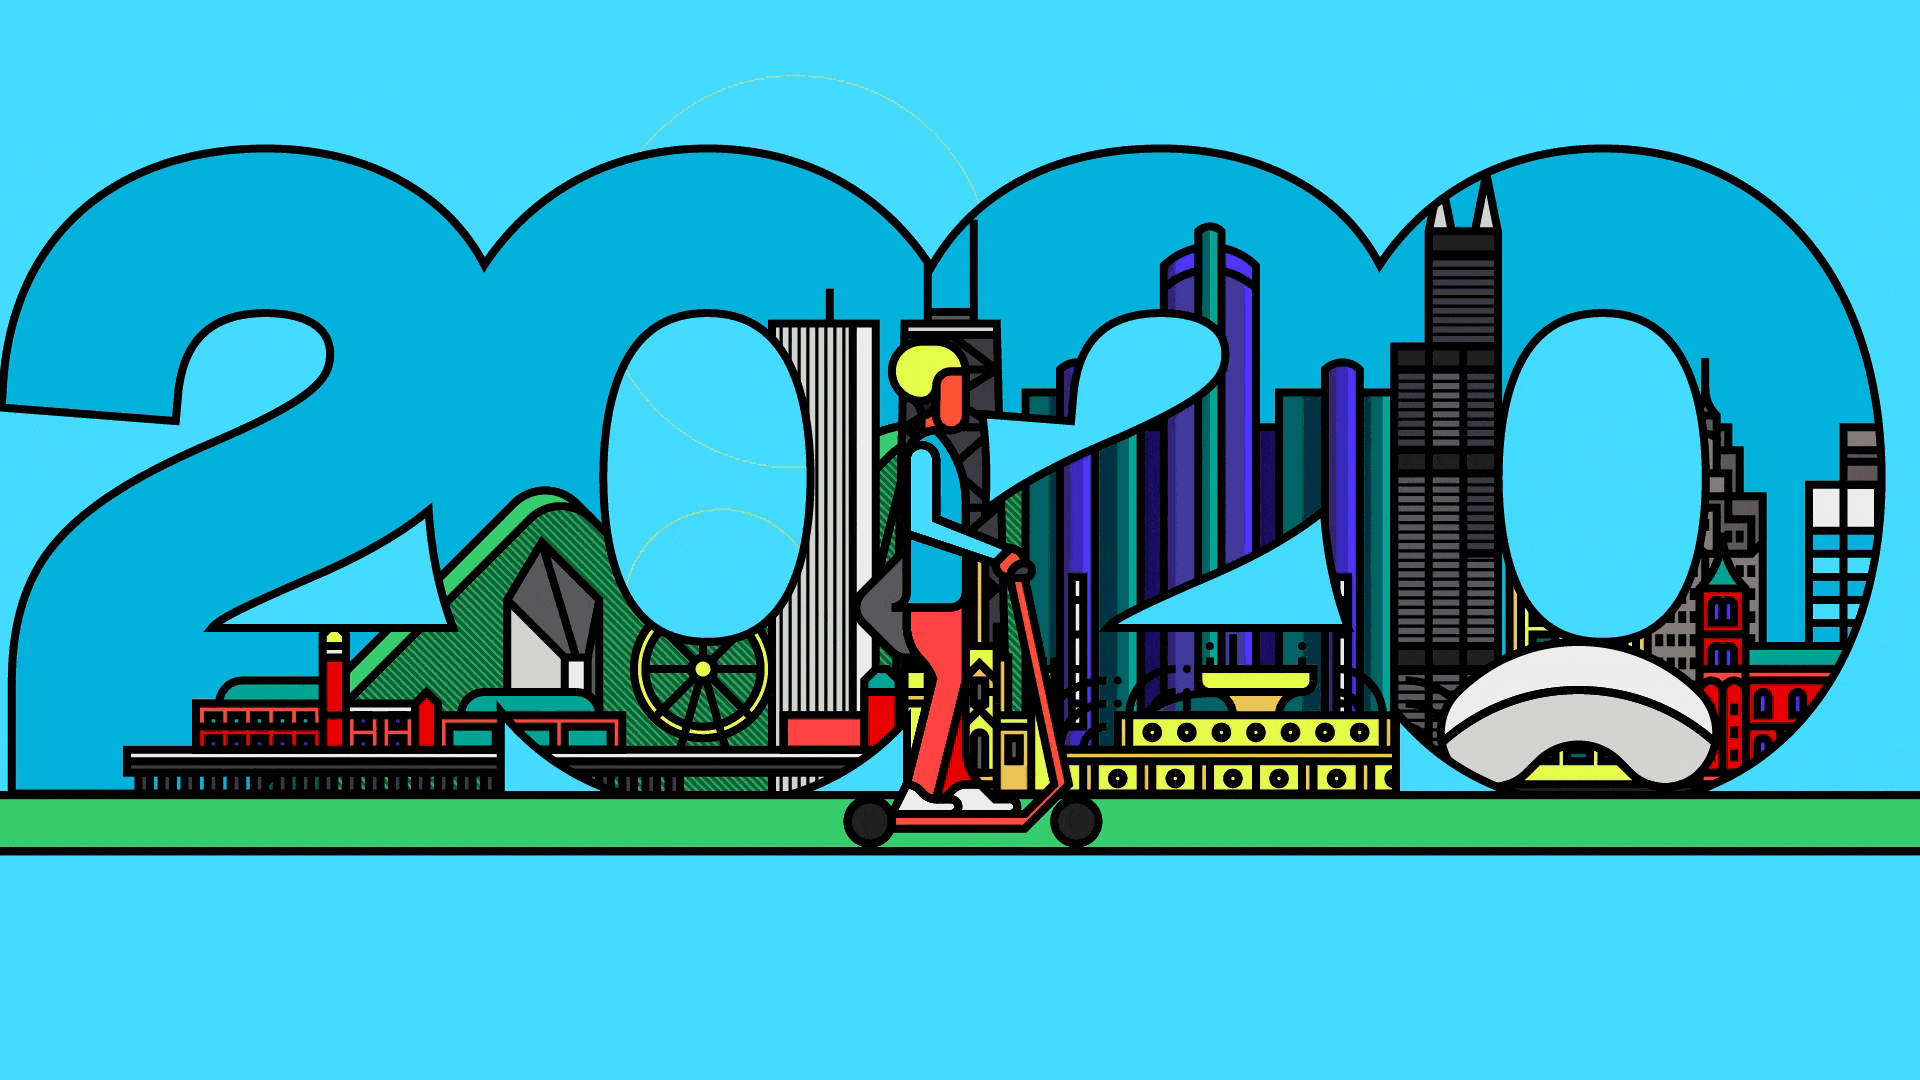 An illustration of a person riding a scooter in front of the number 2020. In the numbers are various icons from cities around the world.